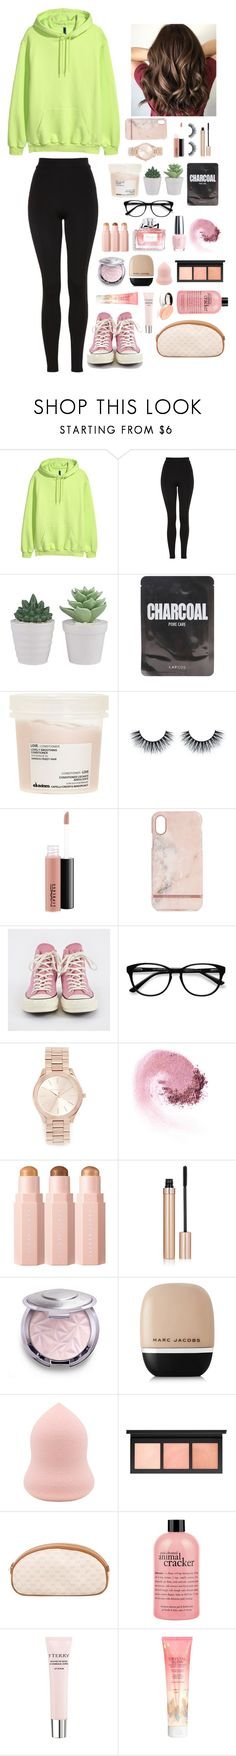 """""""*Pink and green*"""" by gussied-up on Polyvore featuring Topshop, Lapcos, Davines, MAC Cosmetics, Richmond & Finch, Converse, EyeBuyDirect.com, Michael Kors, OPI and Christian Dior"""